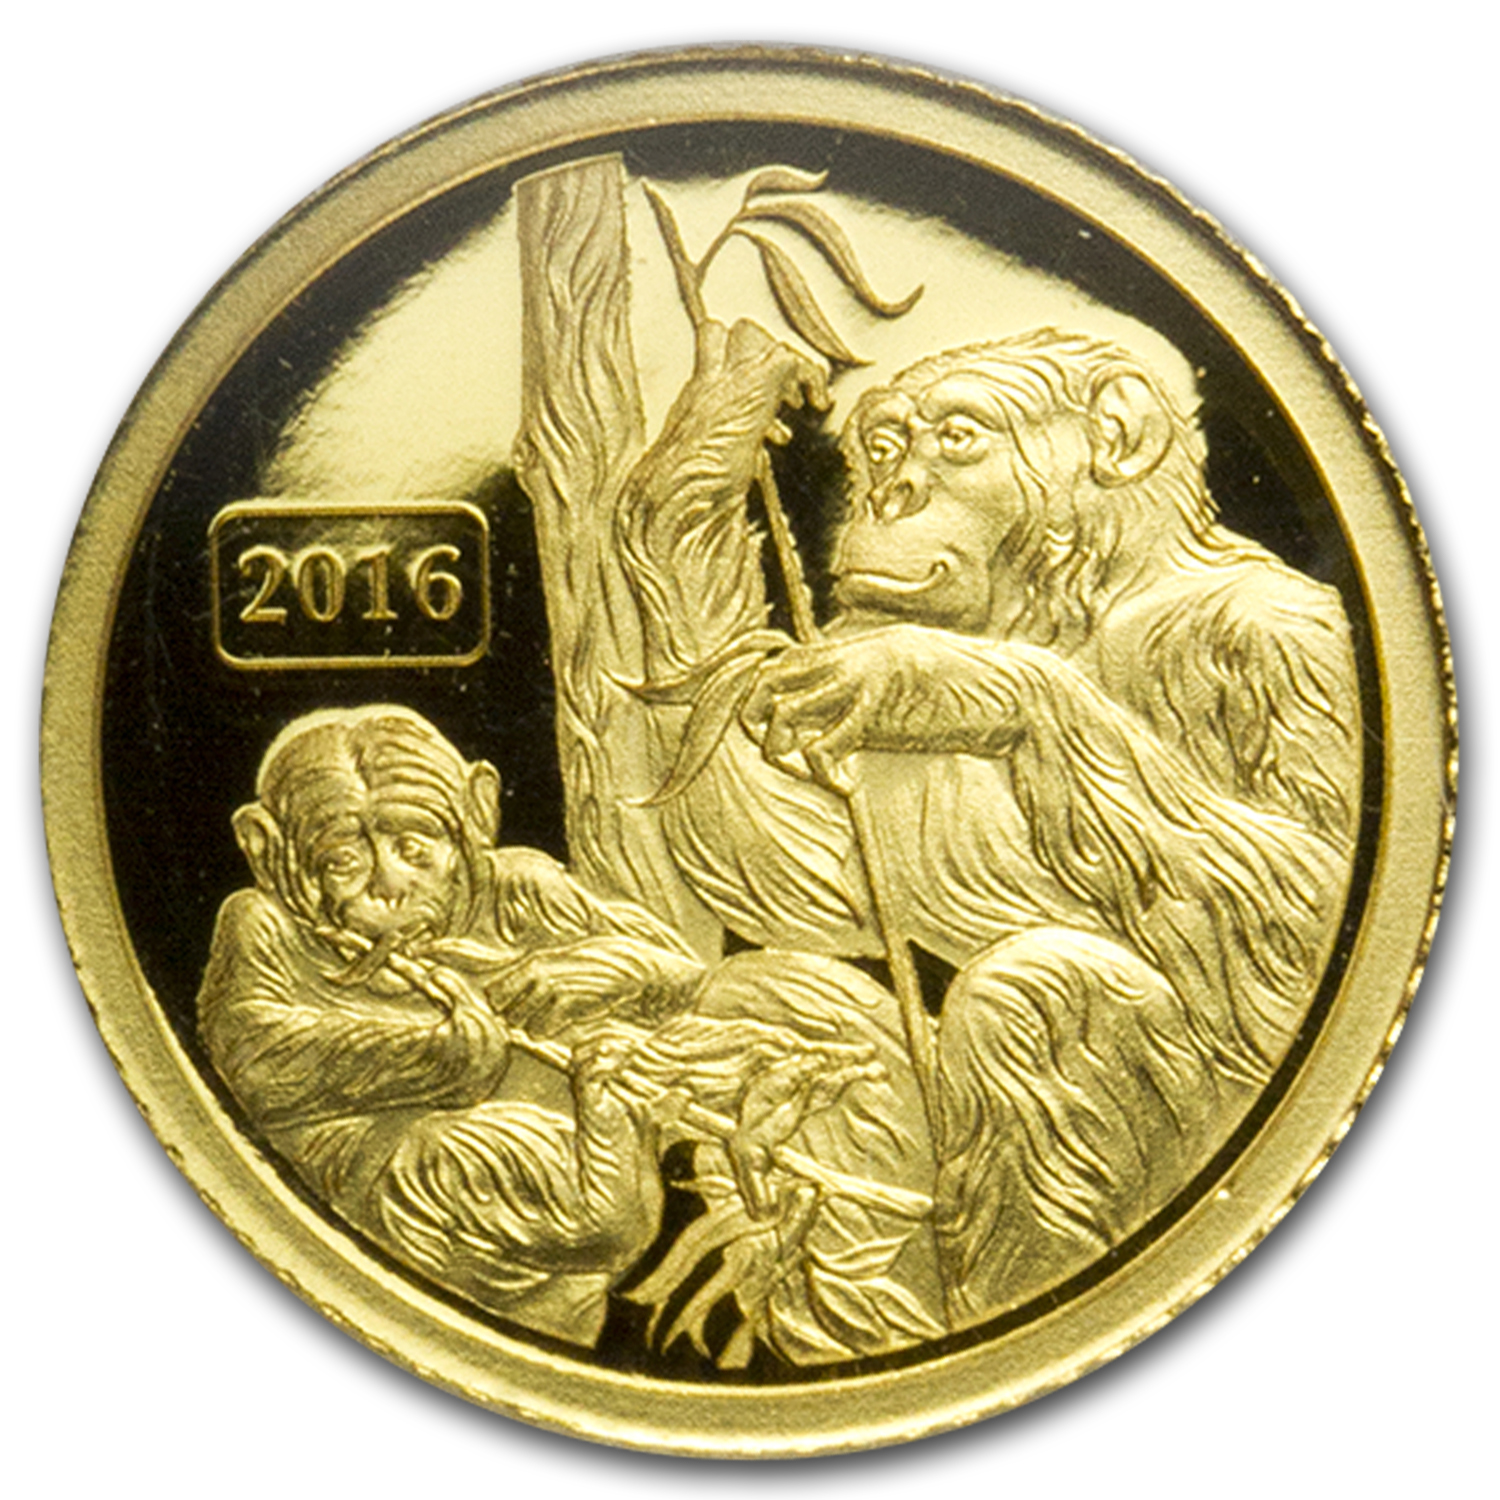 2016 Tokelau 1/2 gram Gold $5 Lunar Monkey Family